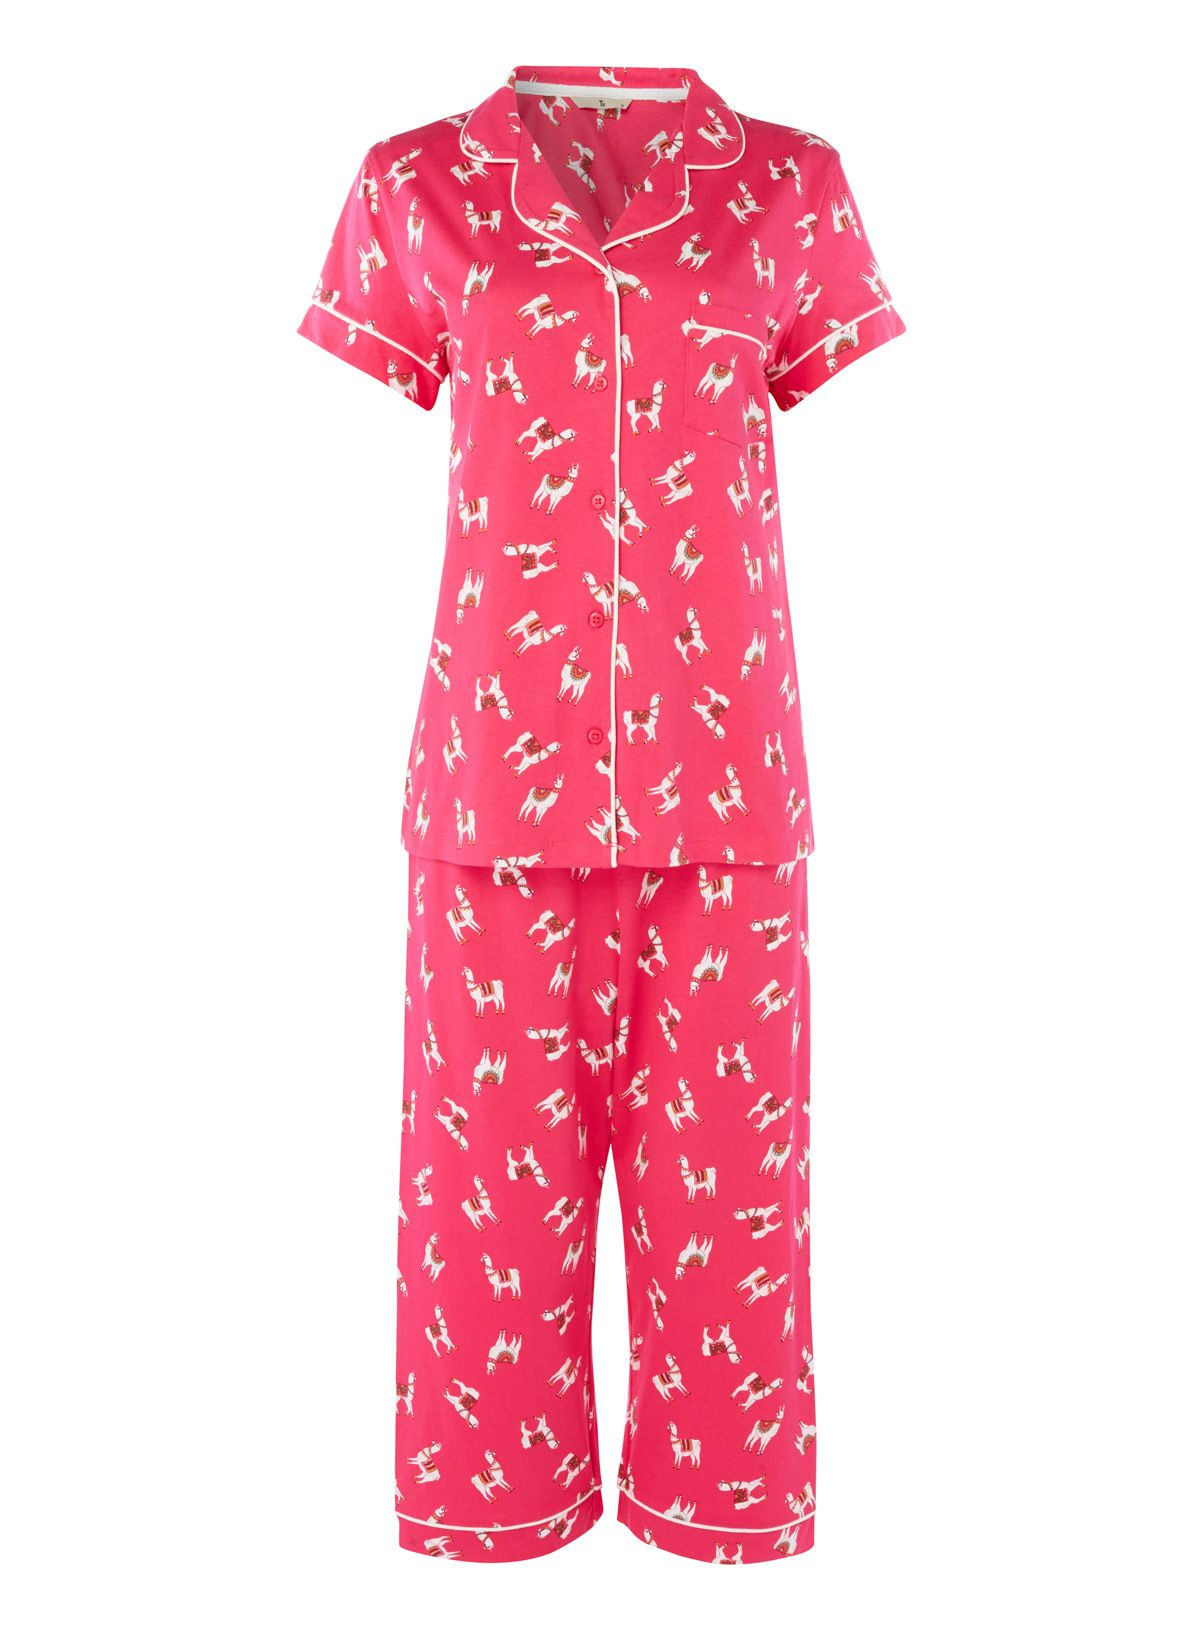 c02ea5582 Snuggle up this winter with this novelty traditional pyjama set ...